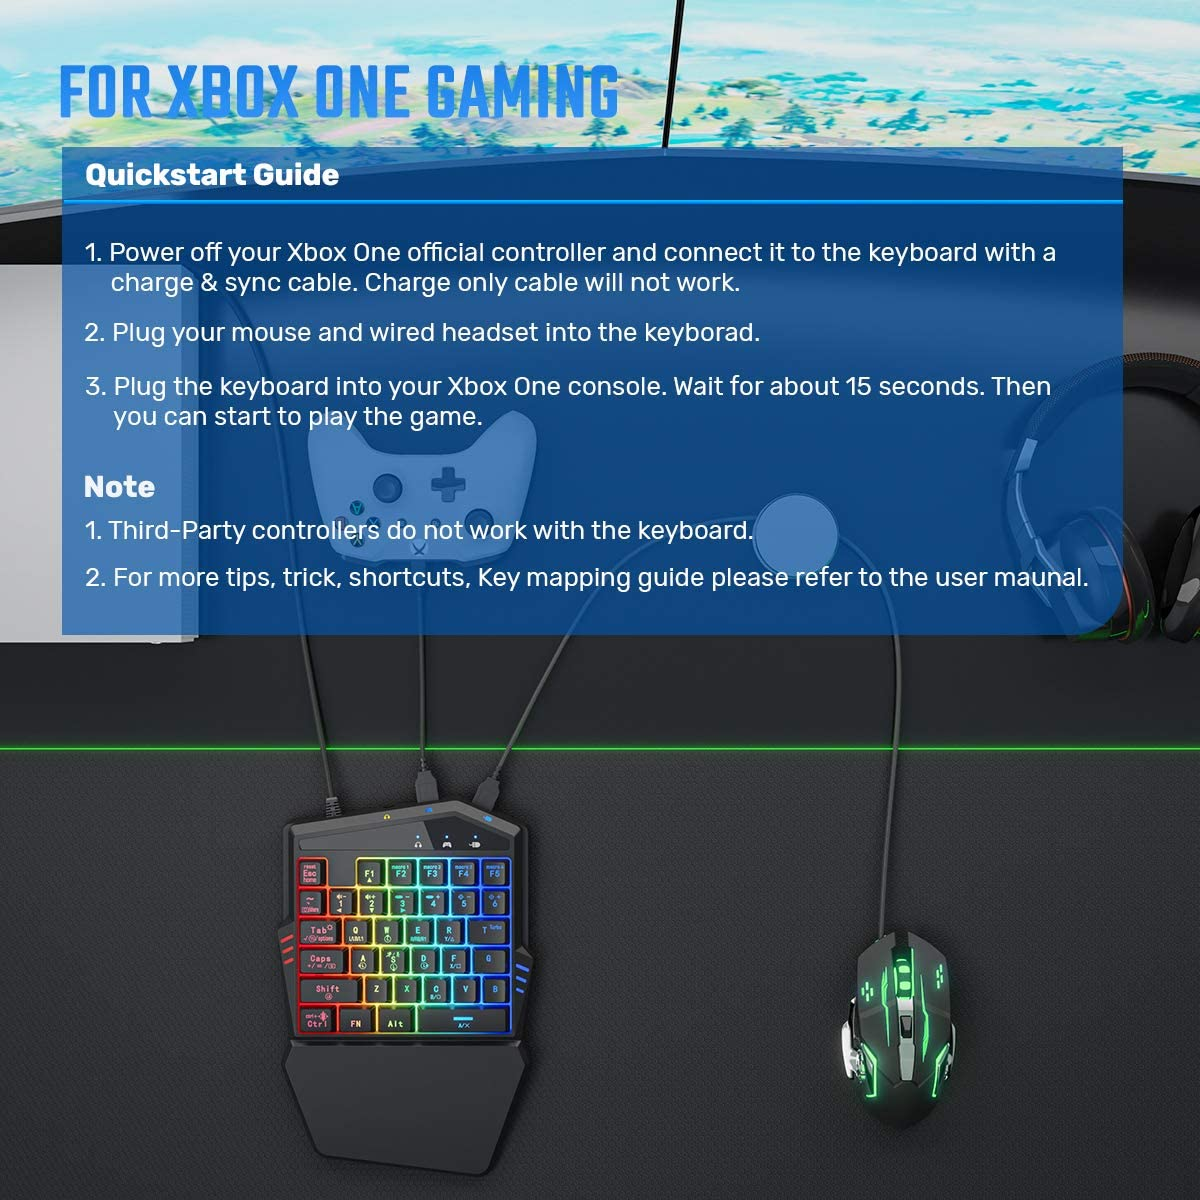 iFYOO Gaming Keyboard and Mouse Combo (Converter Build in) for PS4, PS3, Xbox One, Nintendo Switch, Xbox 360 Call of Duty/PUBG enlarge